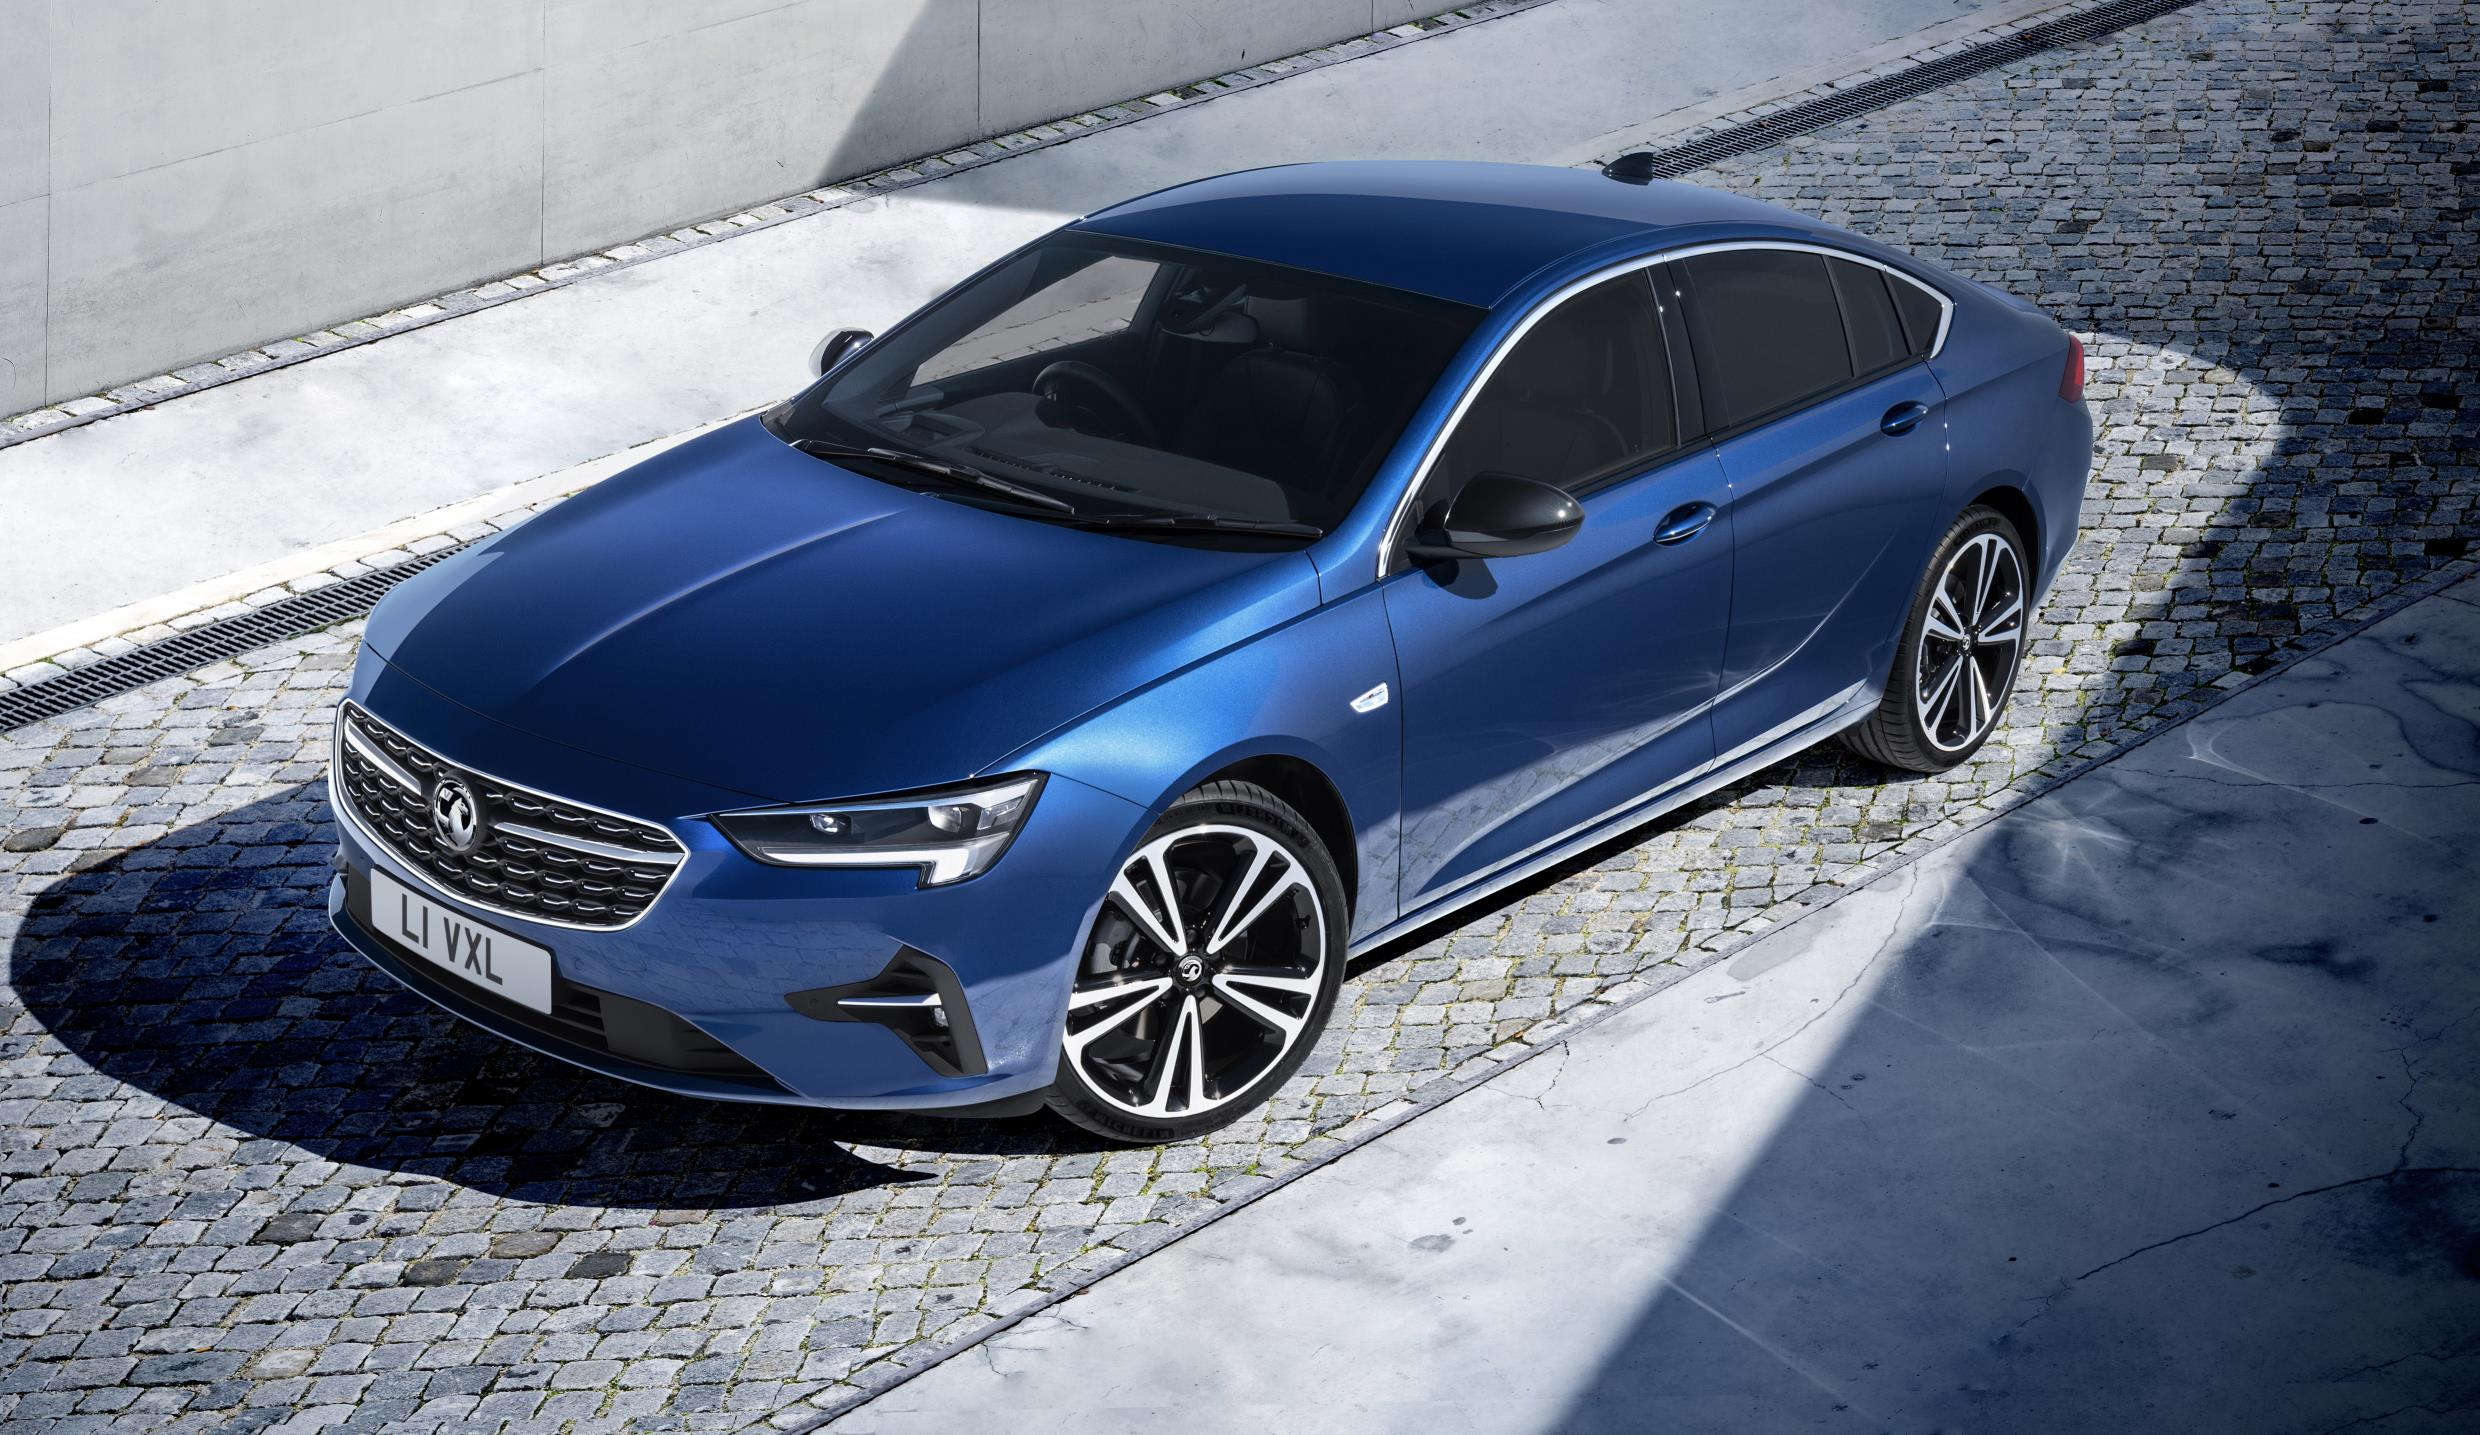 The new Insignia has more in-car tech than before